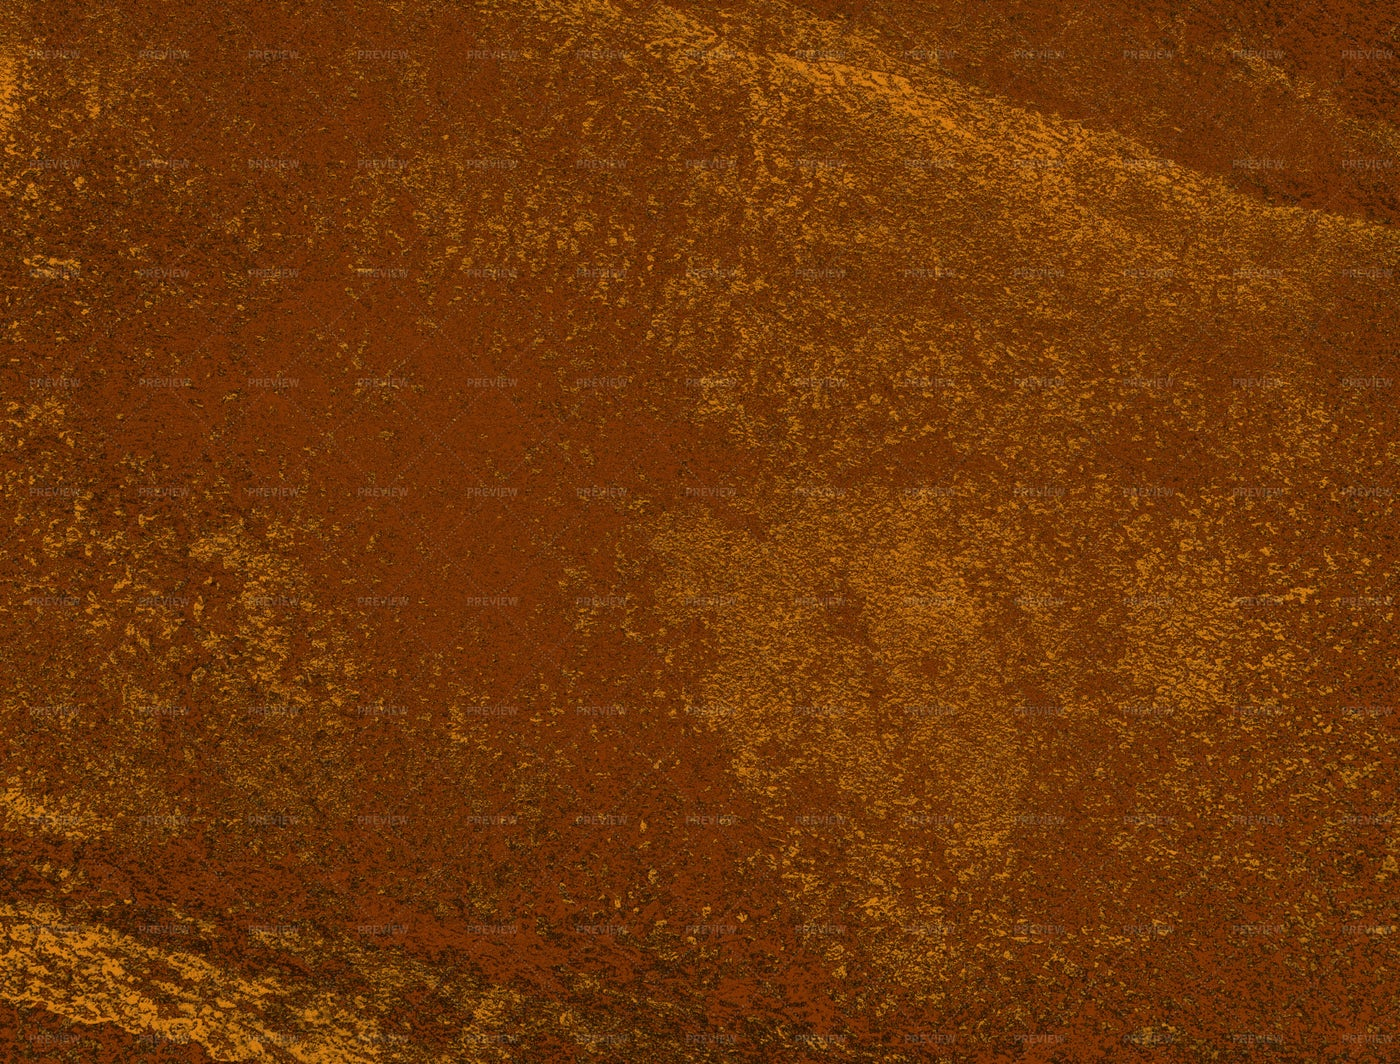 Rusty Wall Texture: Stock Photos